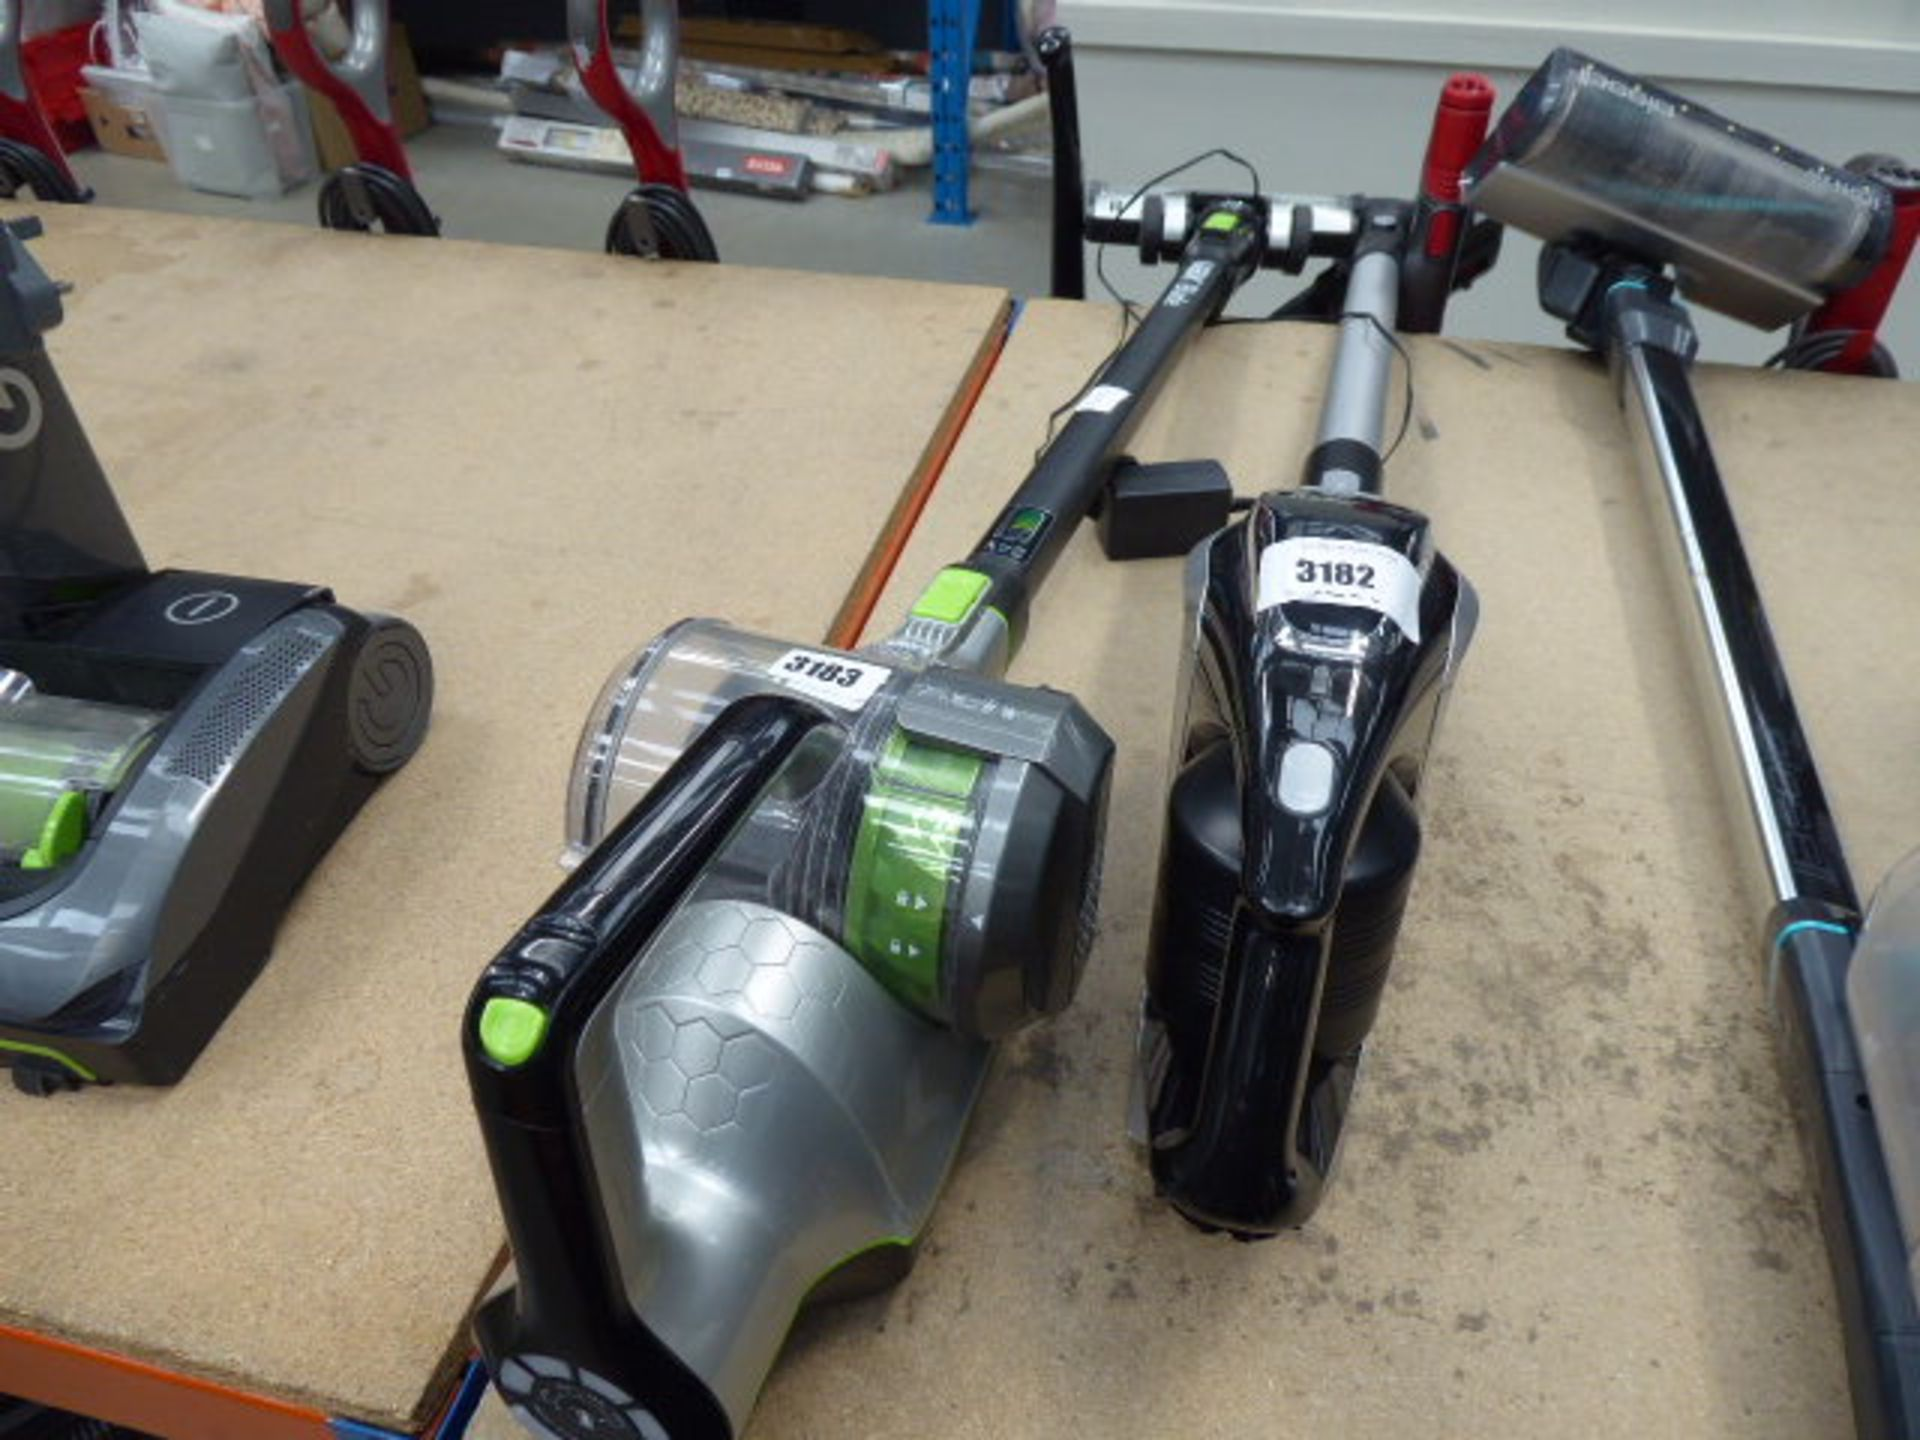 Lot 3183 - Handheld Vax with pole, head and charger